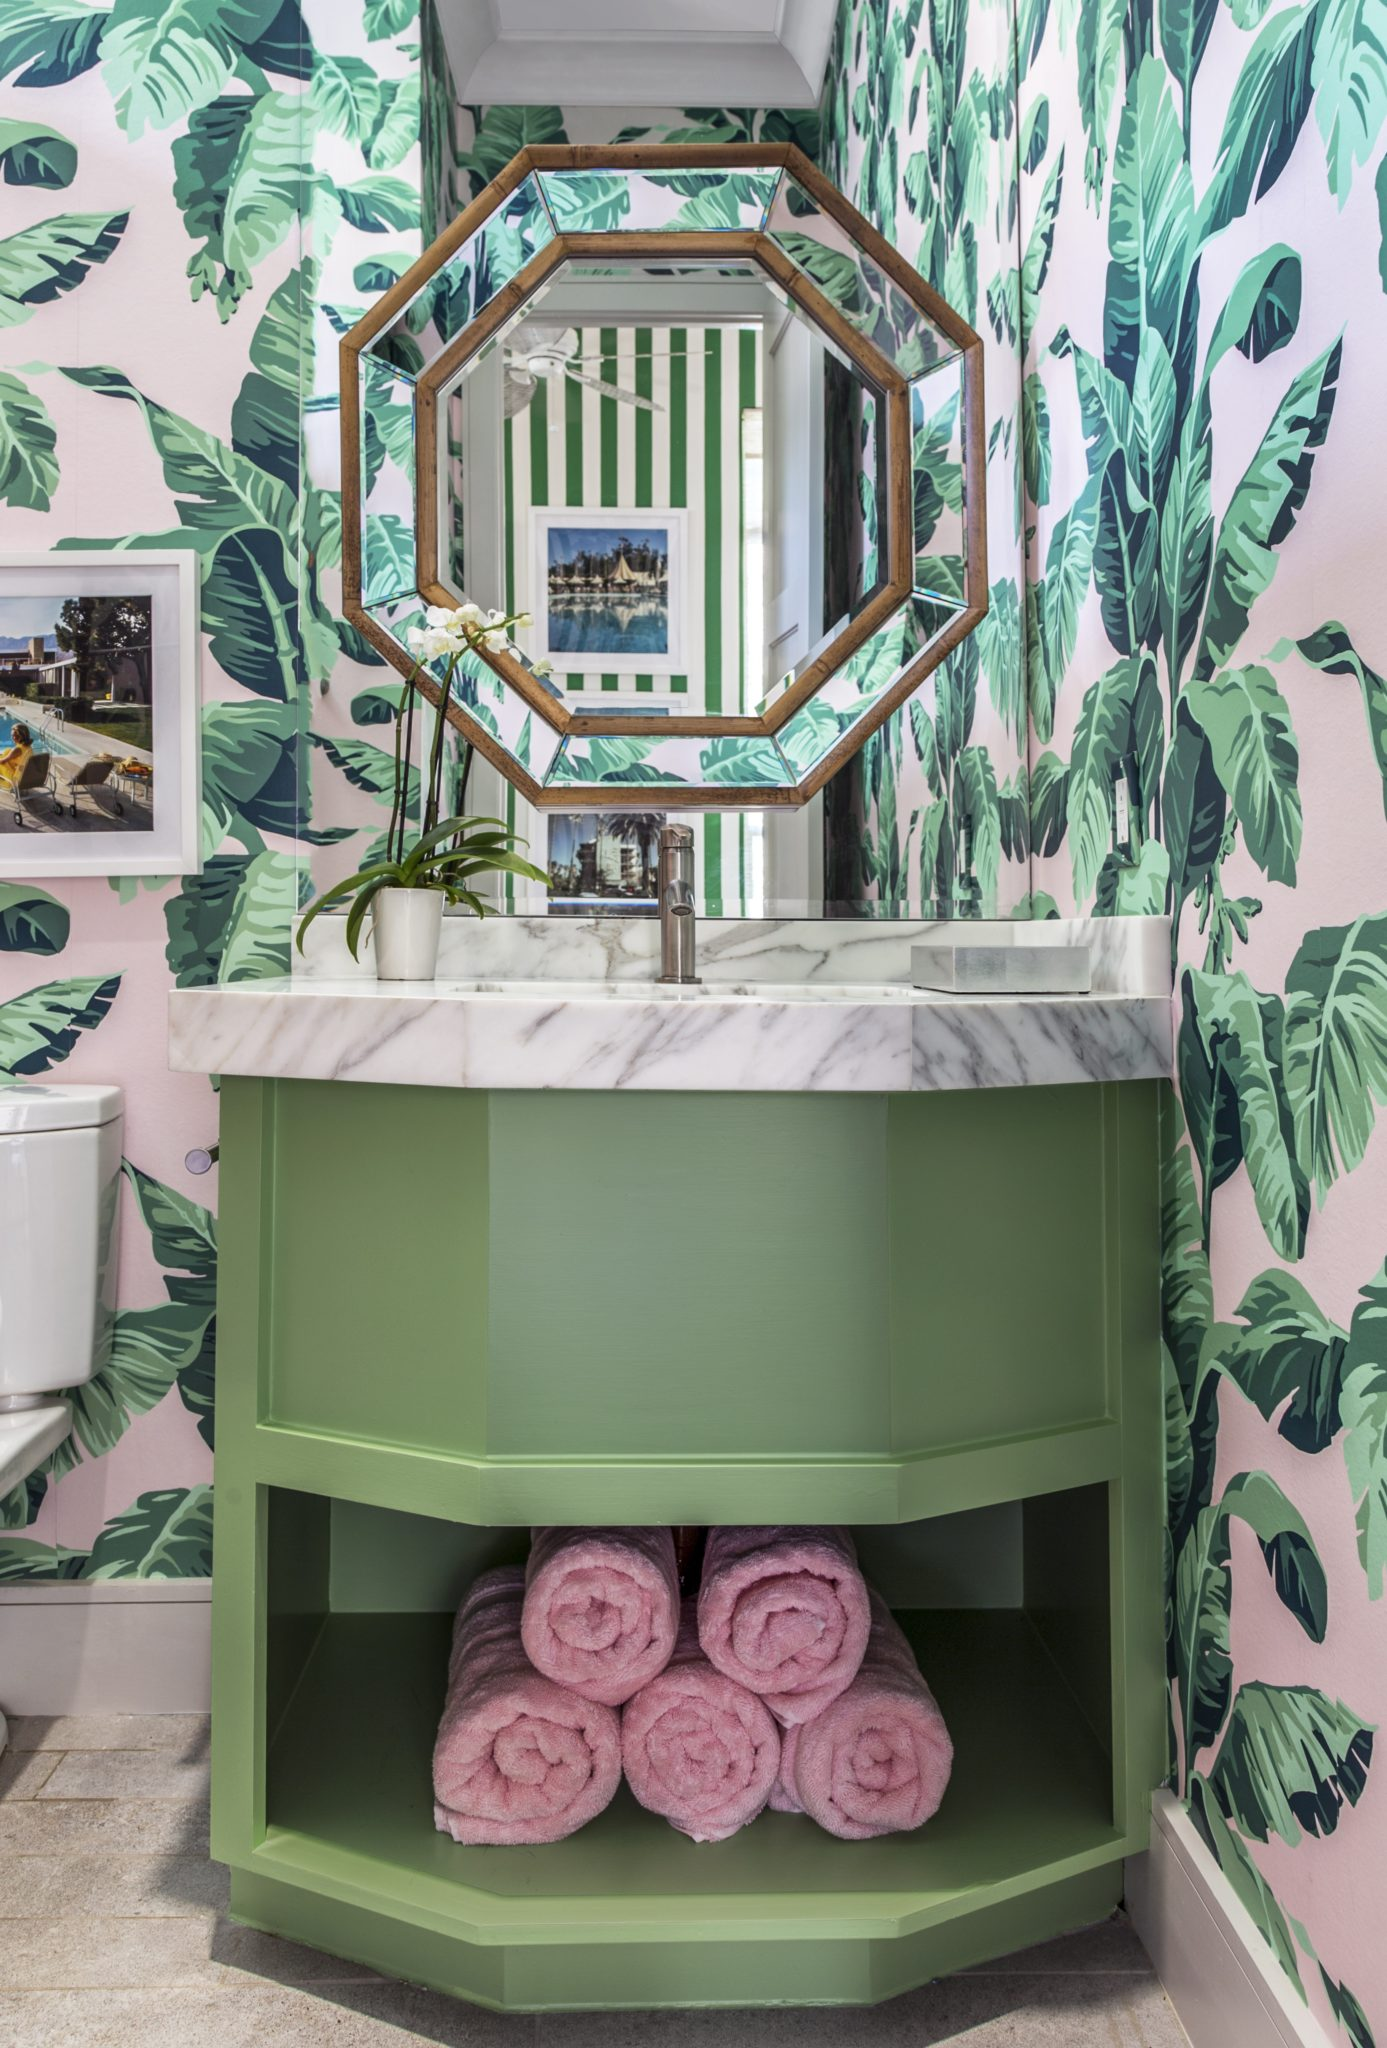 Tanglewood Houston Pool Room Bathroom Inspired by Beverly Hills Hotel by Cindy Witmer Designs